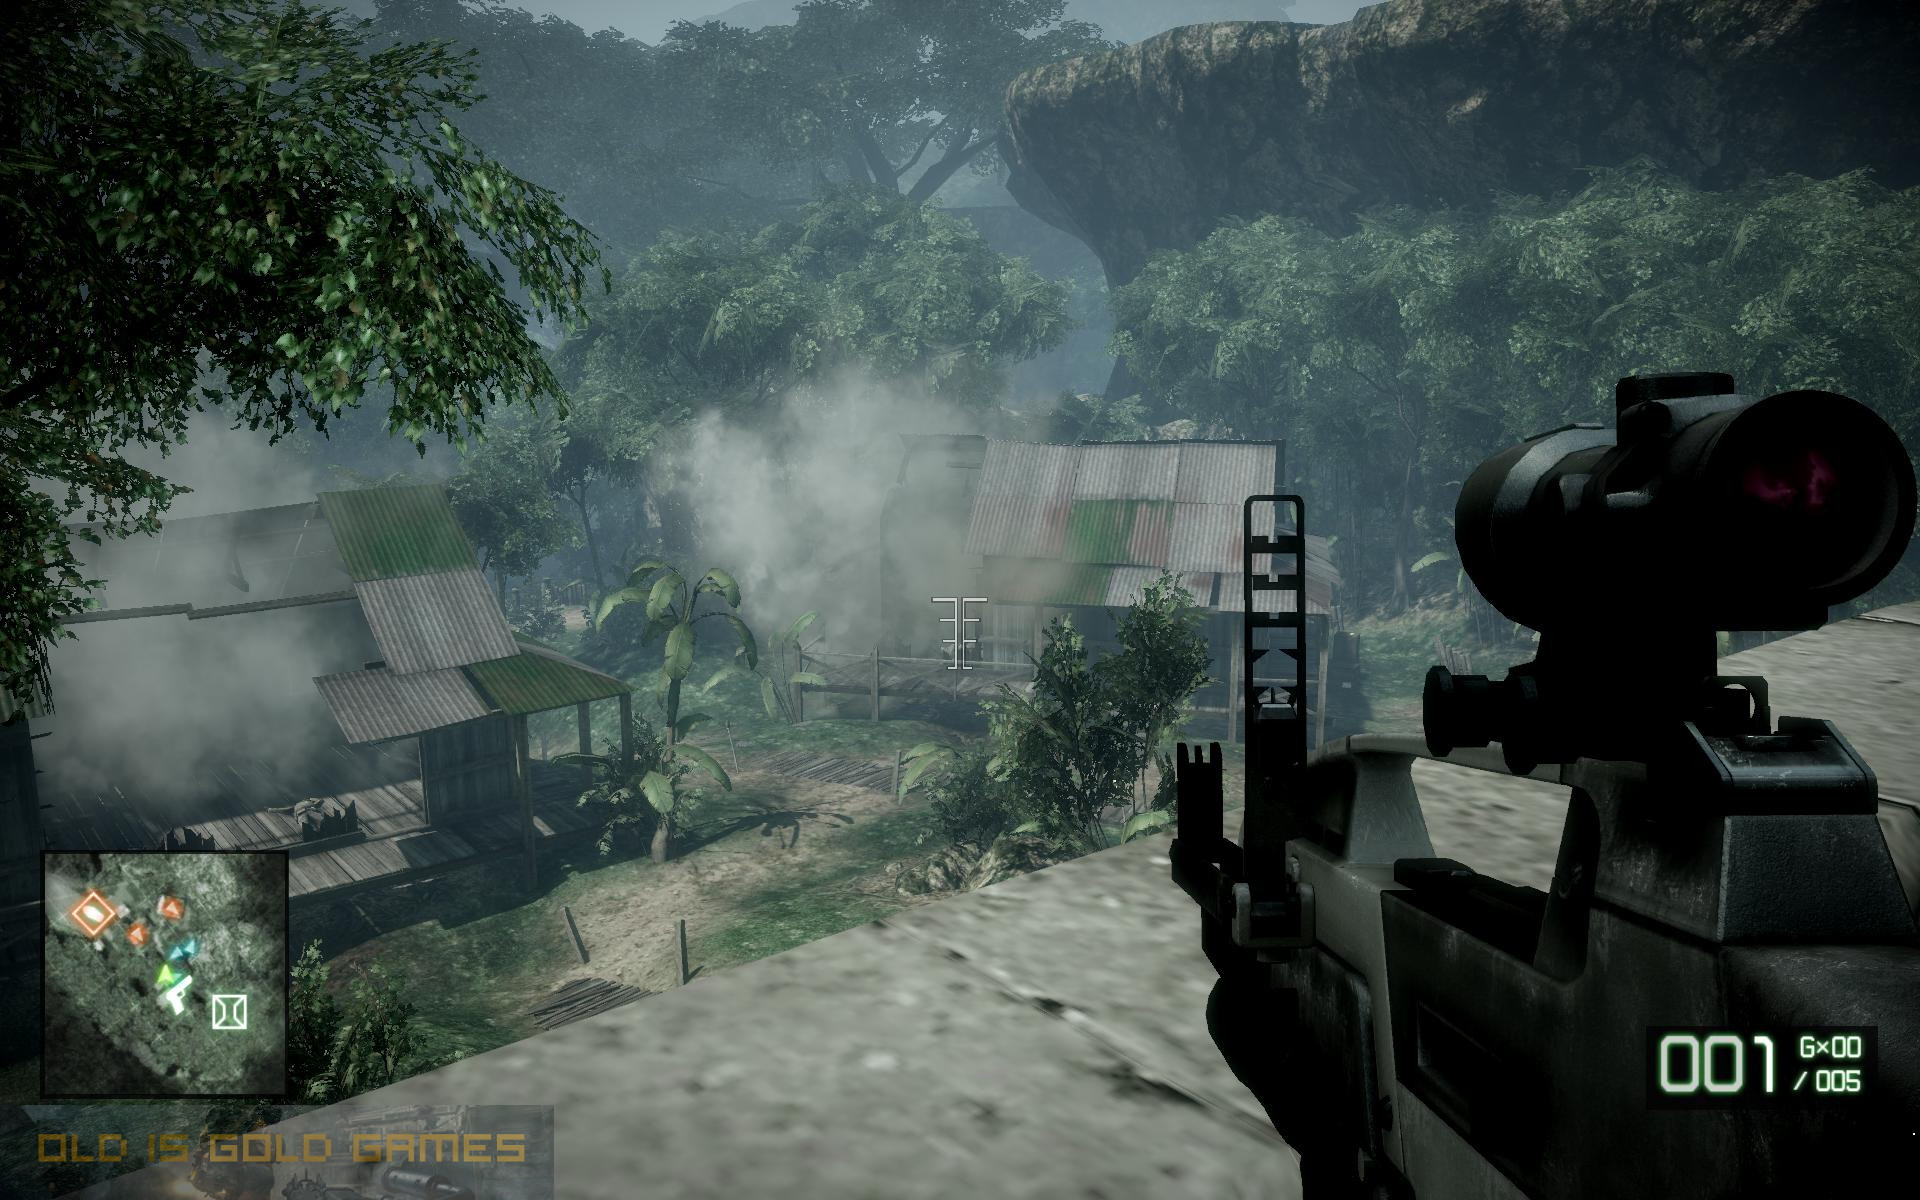 Battlefield 2 Bad Company Features